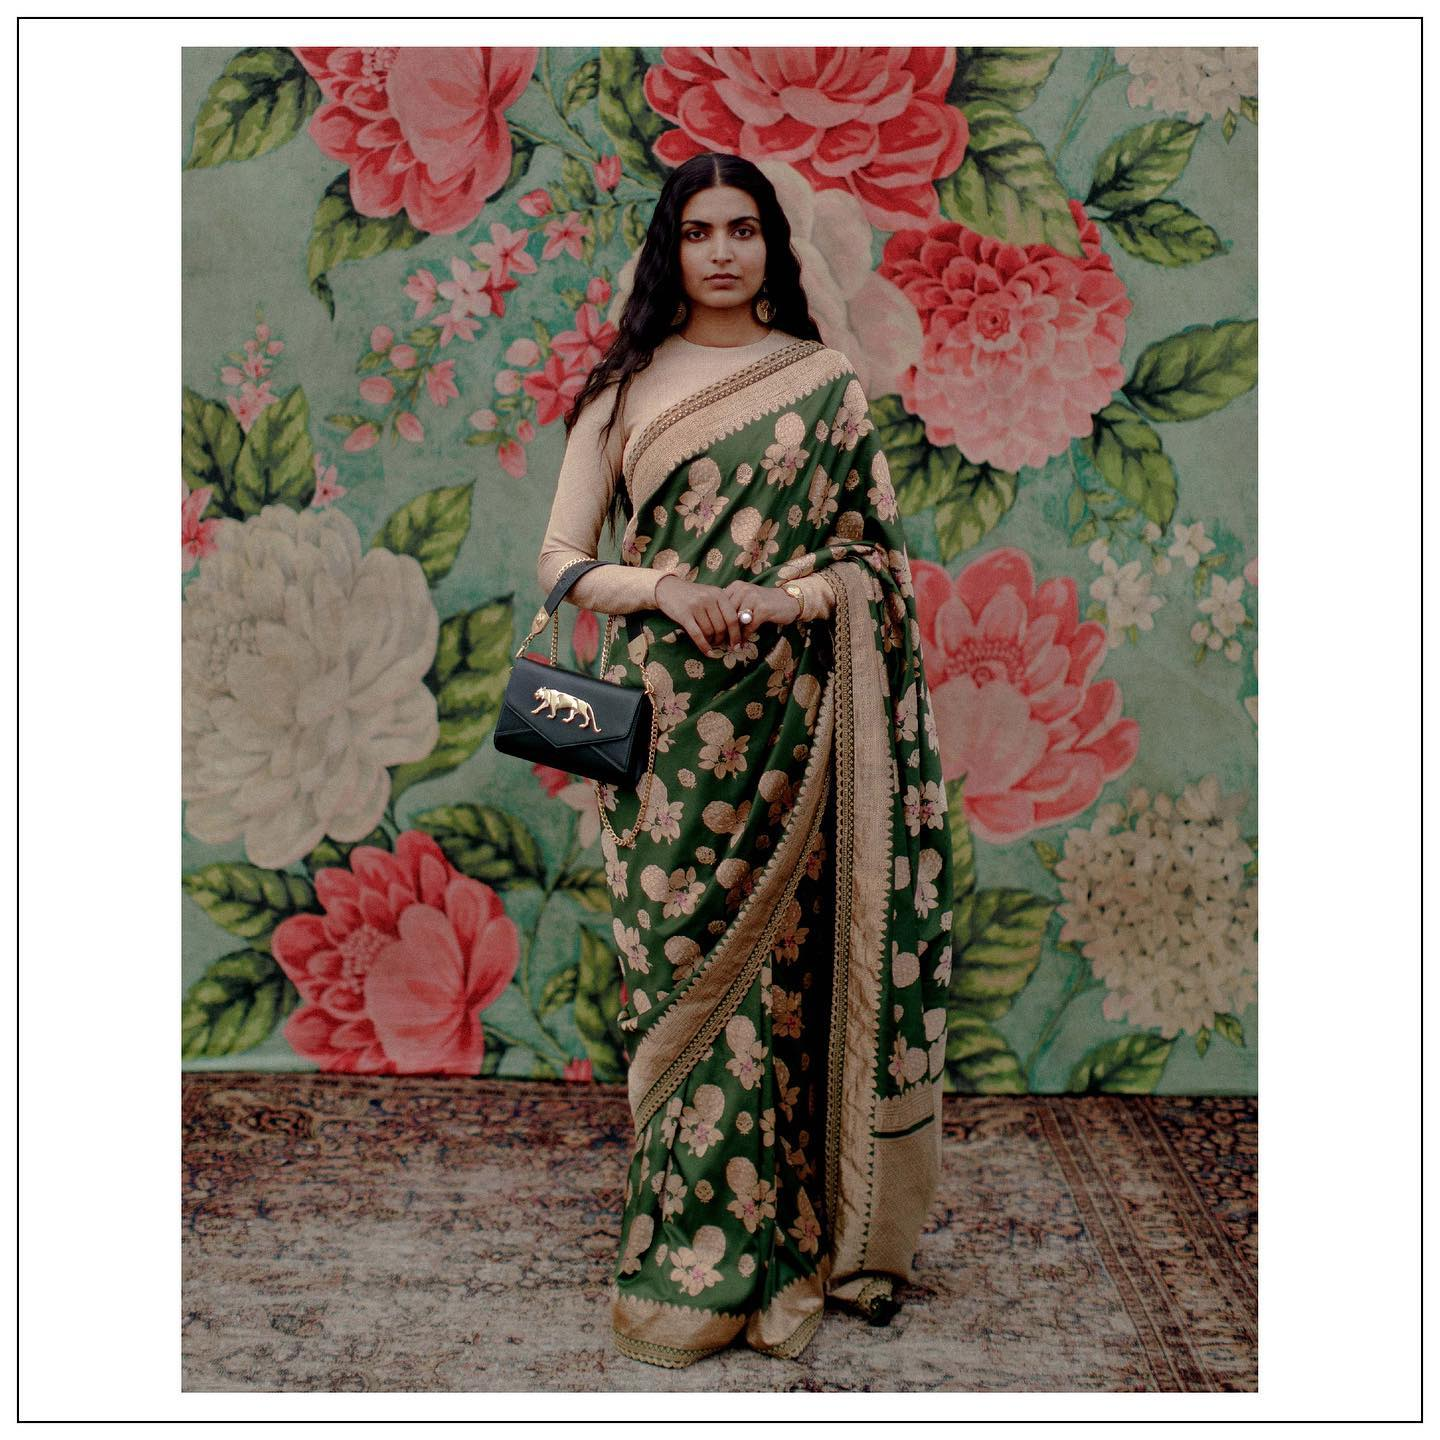 The Sabyasachi saree 2021 Collection.  Womenswear  jewellery sabyasachi jewelry and accessories sabyasachi accessories.  For all product related queries please email  at customerservice@sabyasachi.com or contact  retail stores directly. 2021-06-12